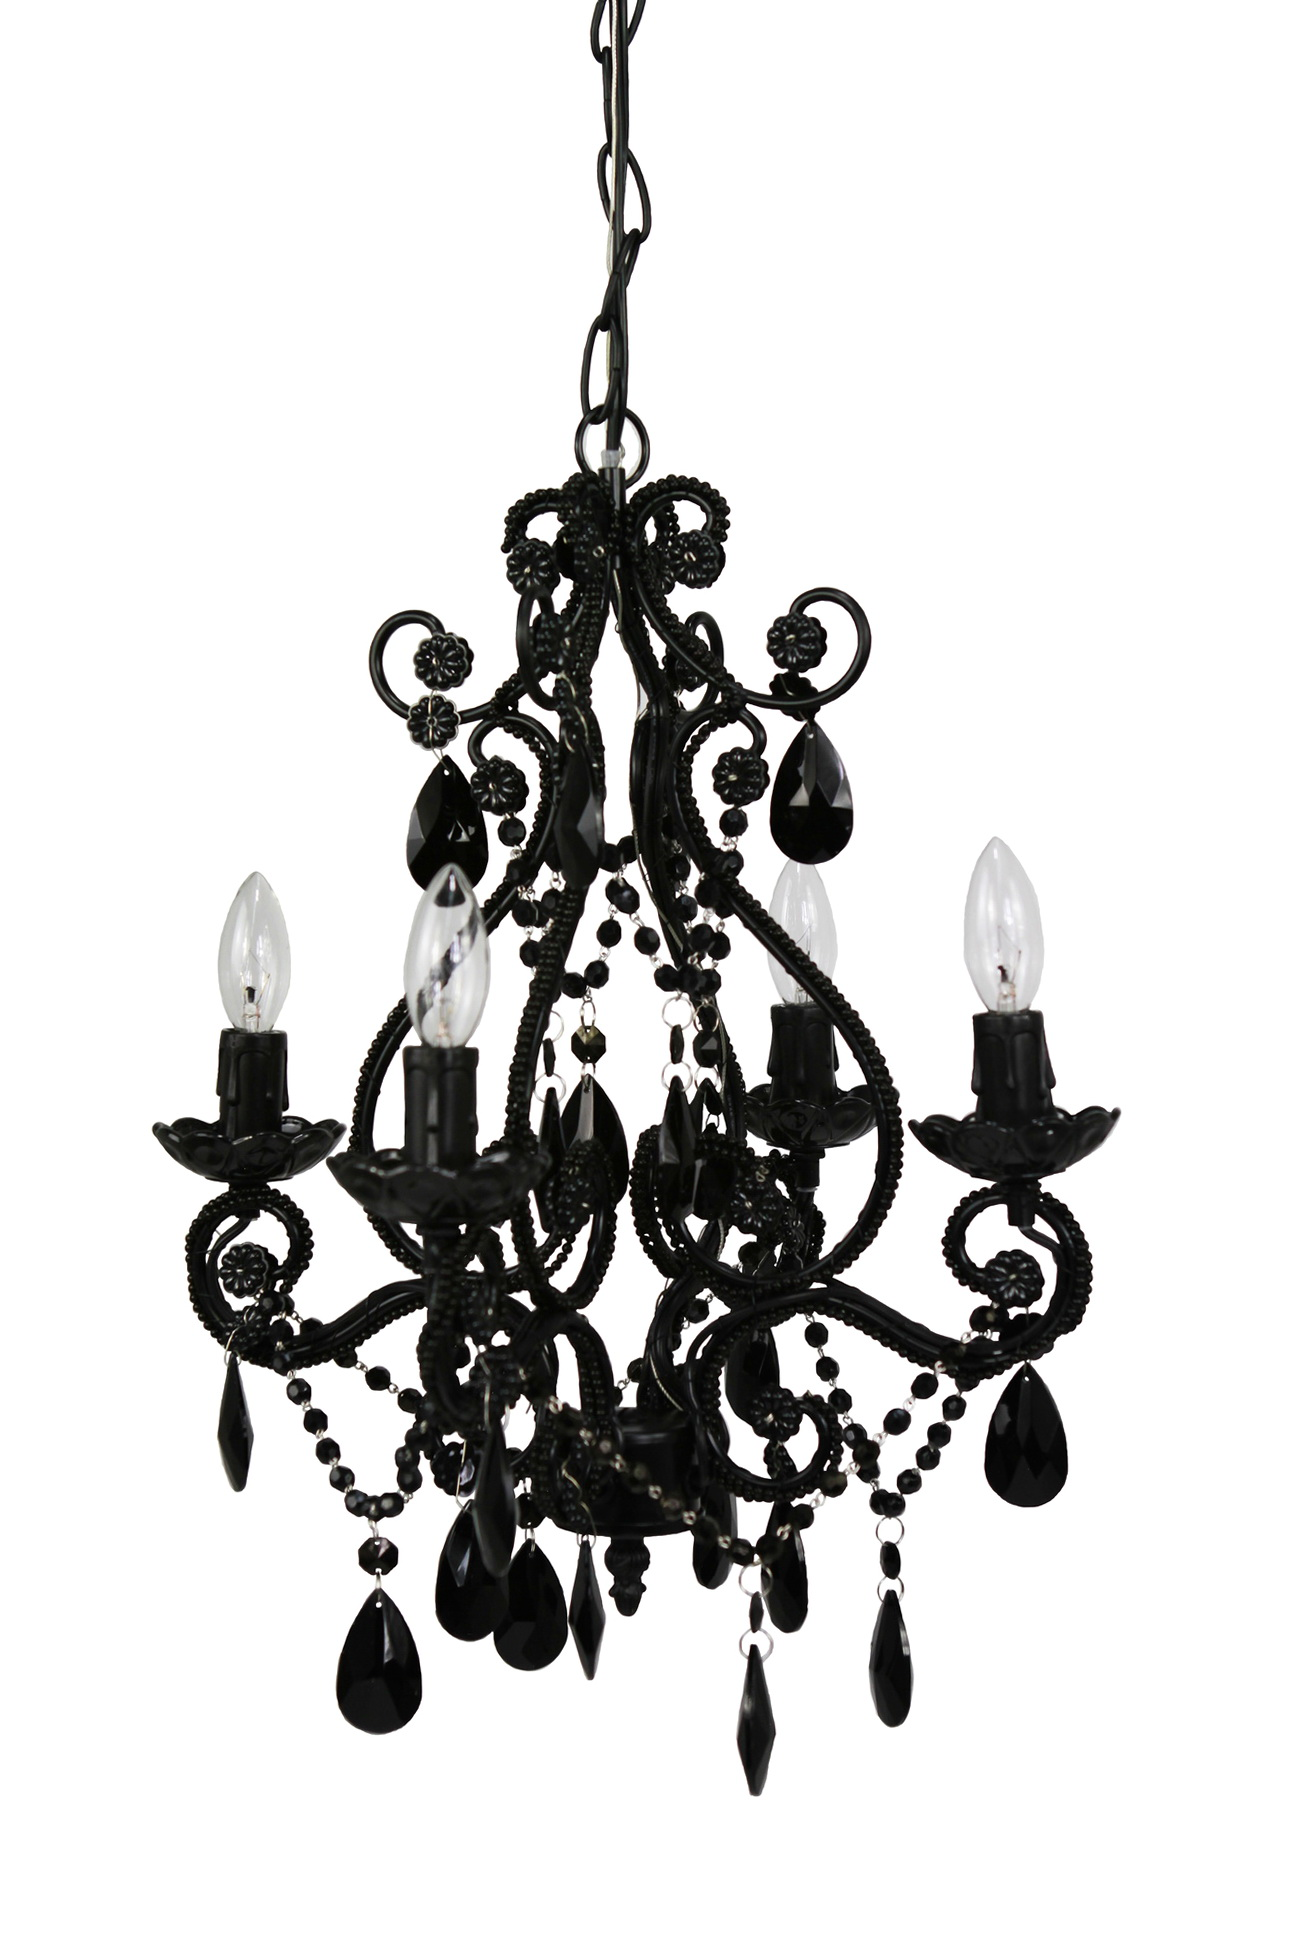 Cheap small chandeliers for bathrooms home design ideas for Small chandeliers for bathrooms